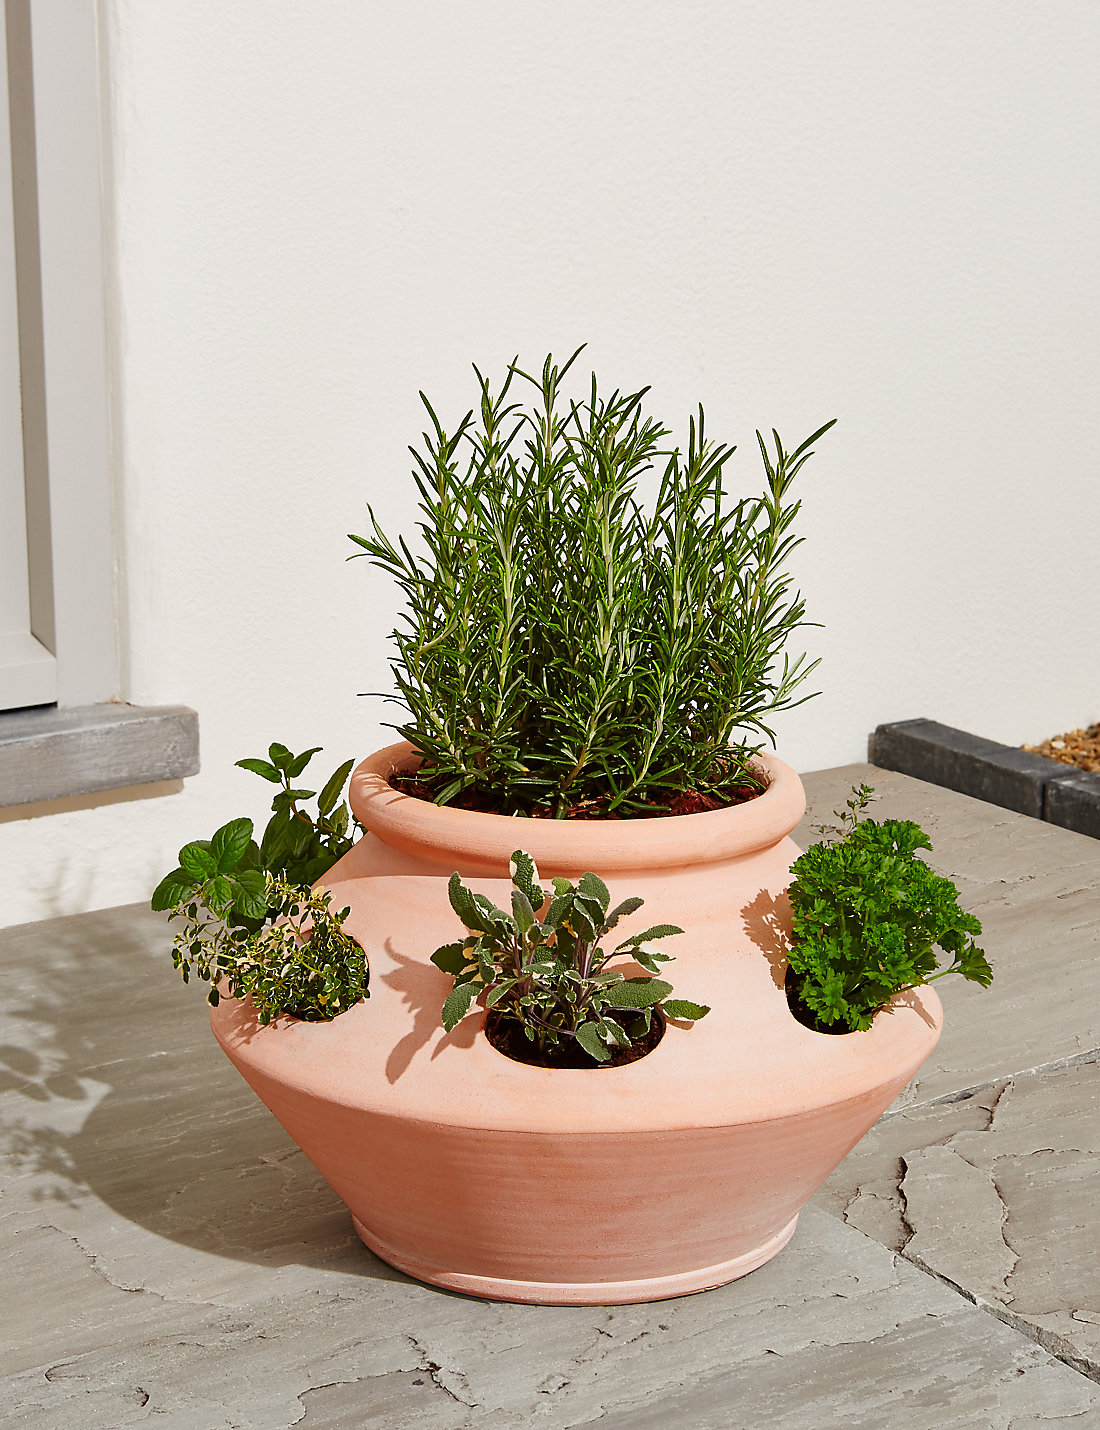 Herb Planter Extraordinary Terracotta Herb Planter  M&s Review